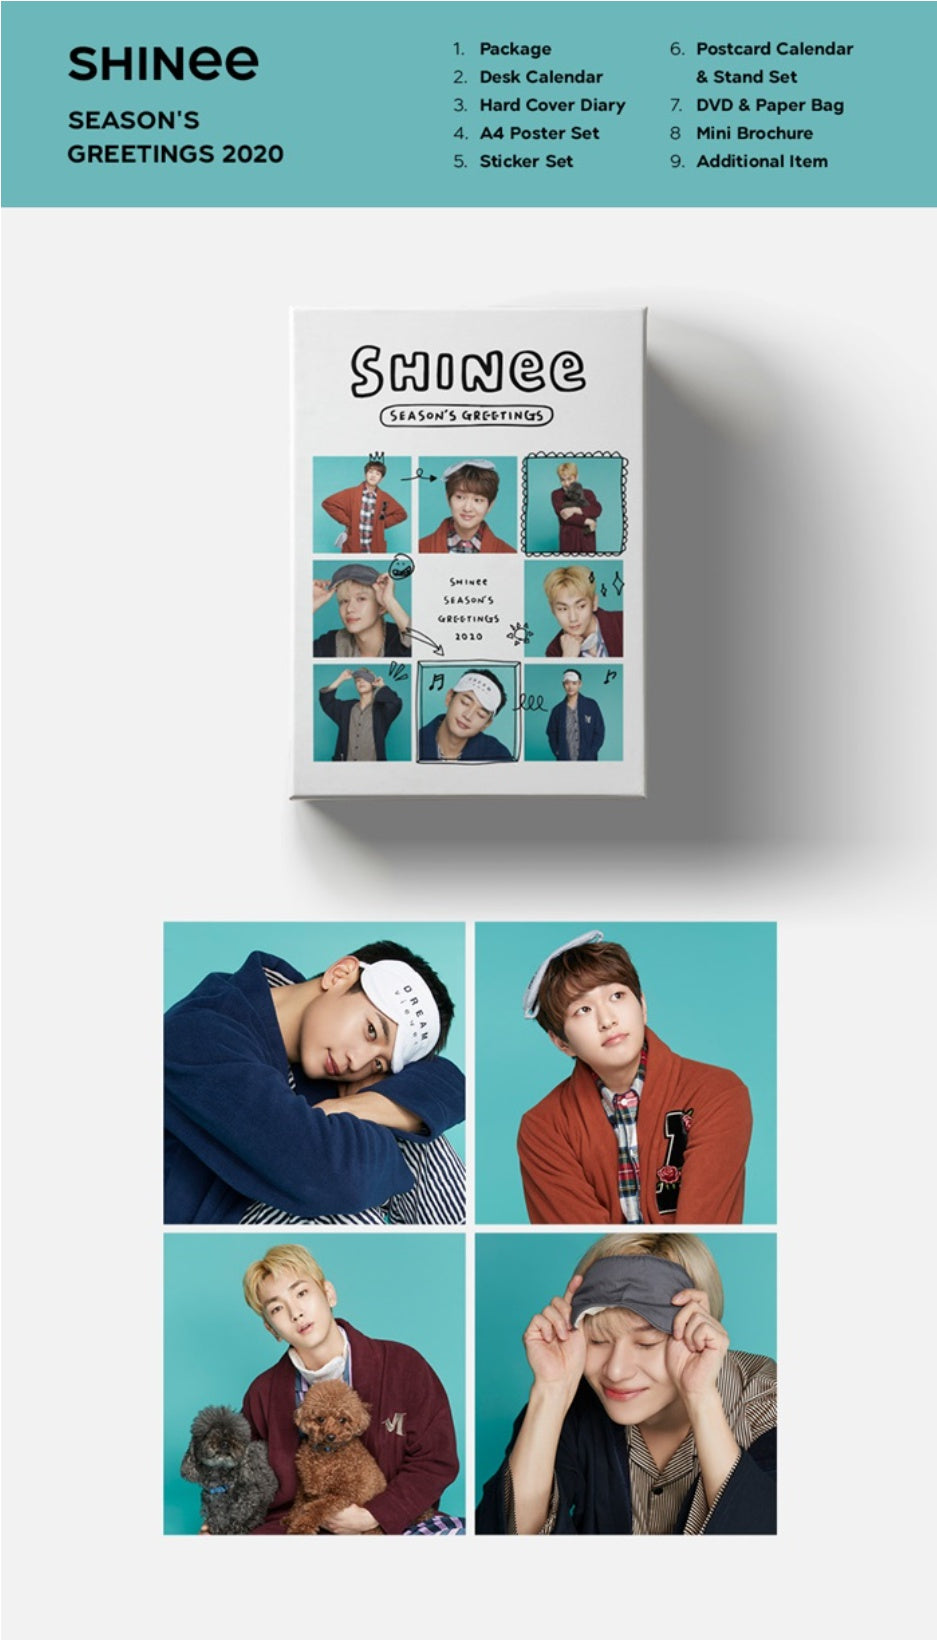 Shinee - 2020 Season's Greetings - Pre-Order